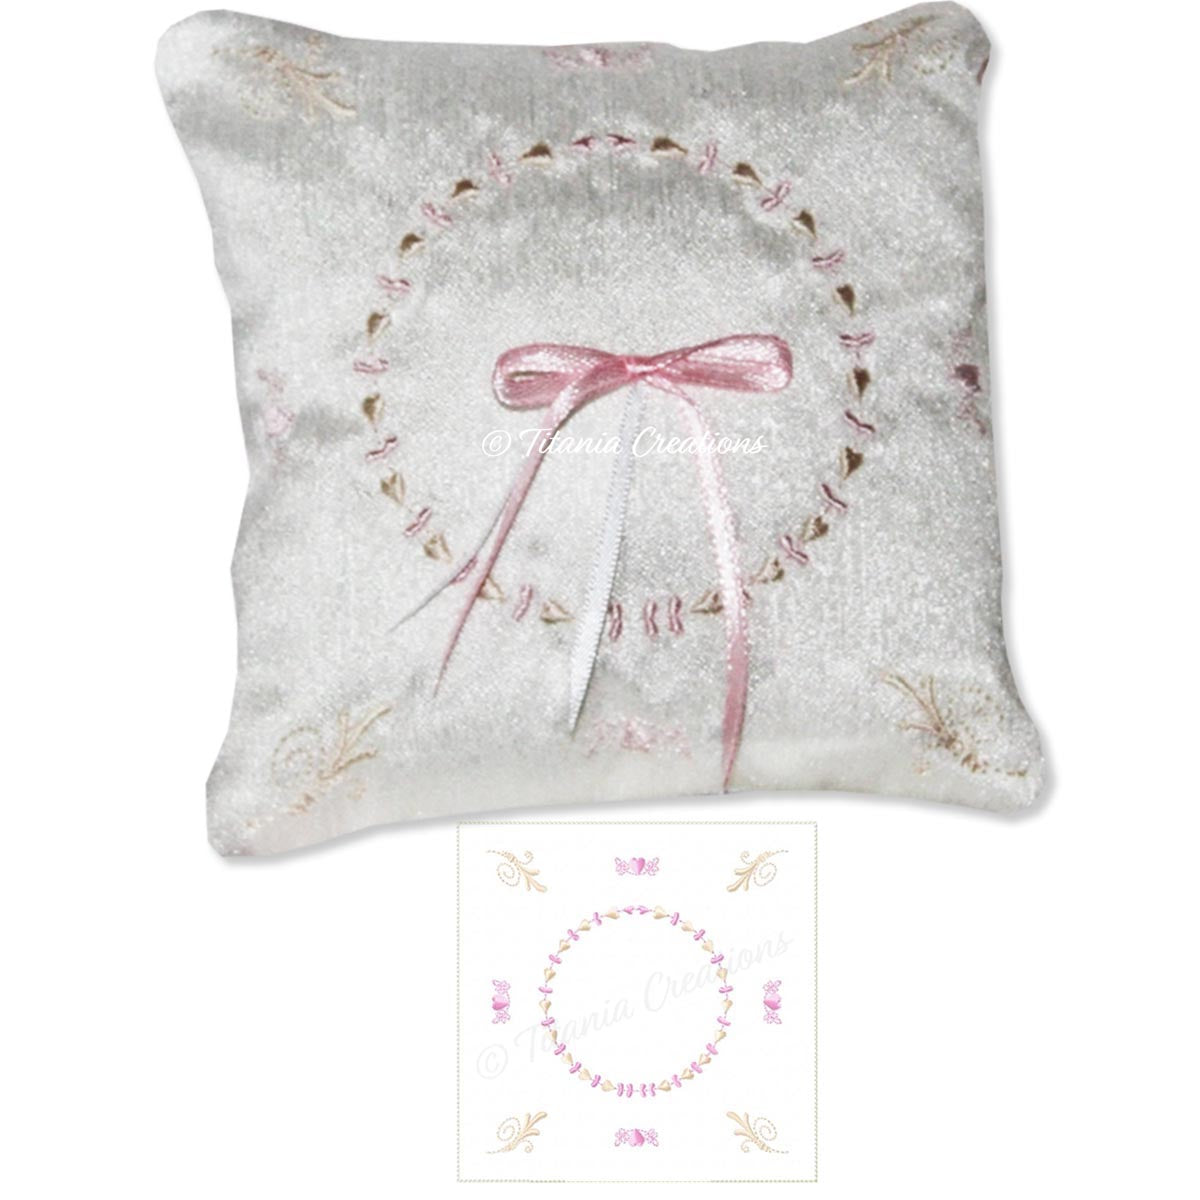 ITH Wedding Ring Cushion 5x5 6x6 8x8